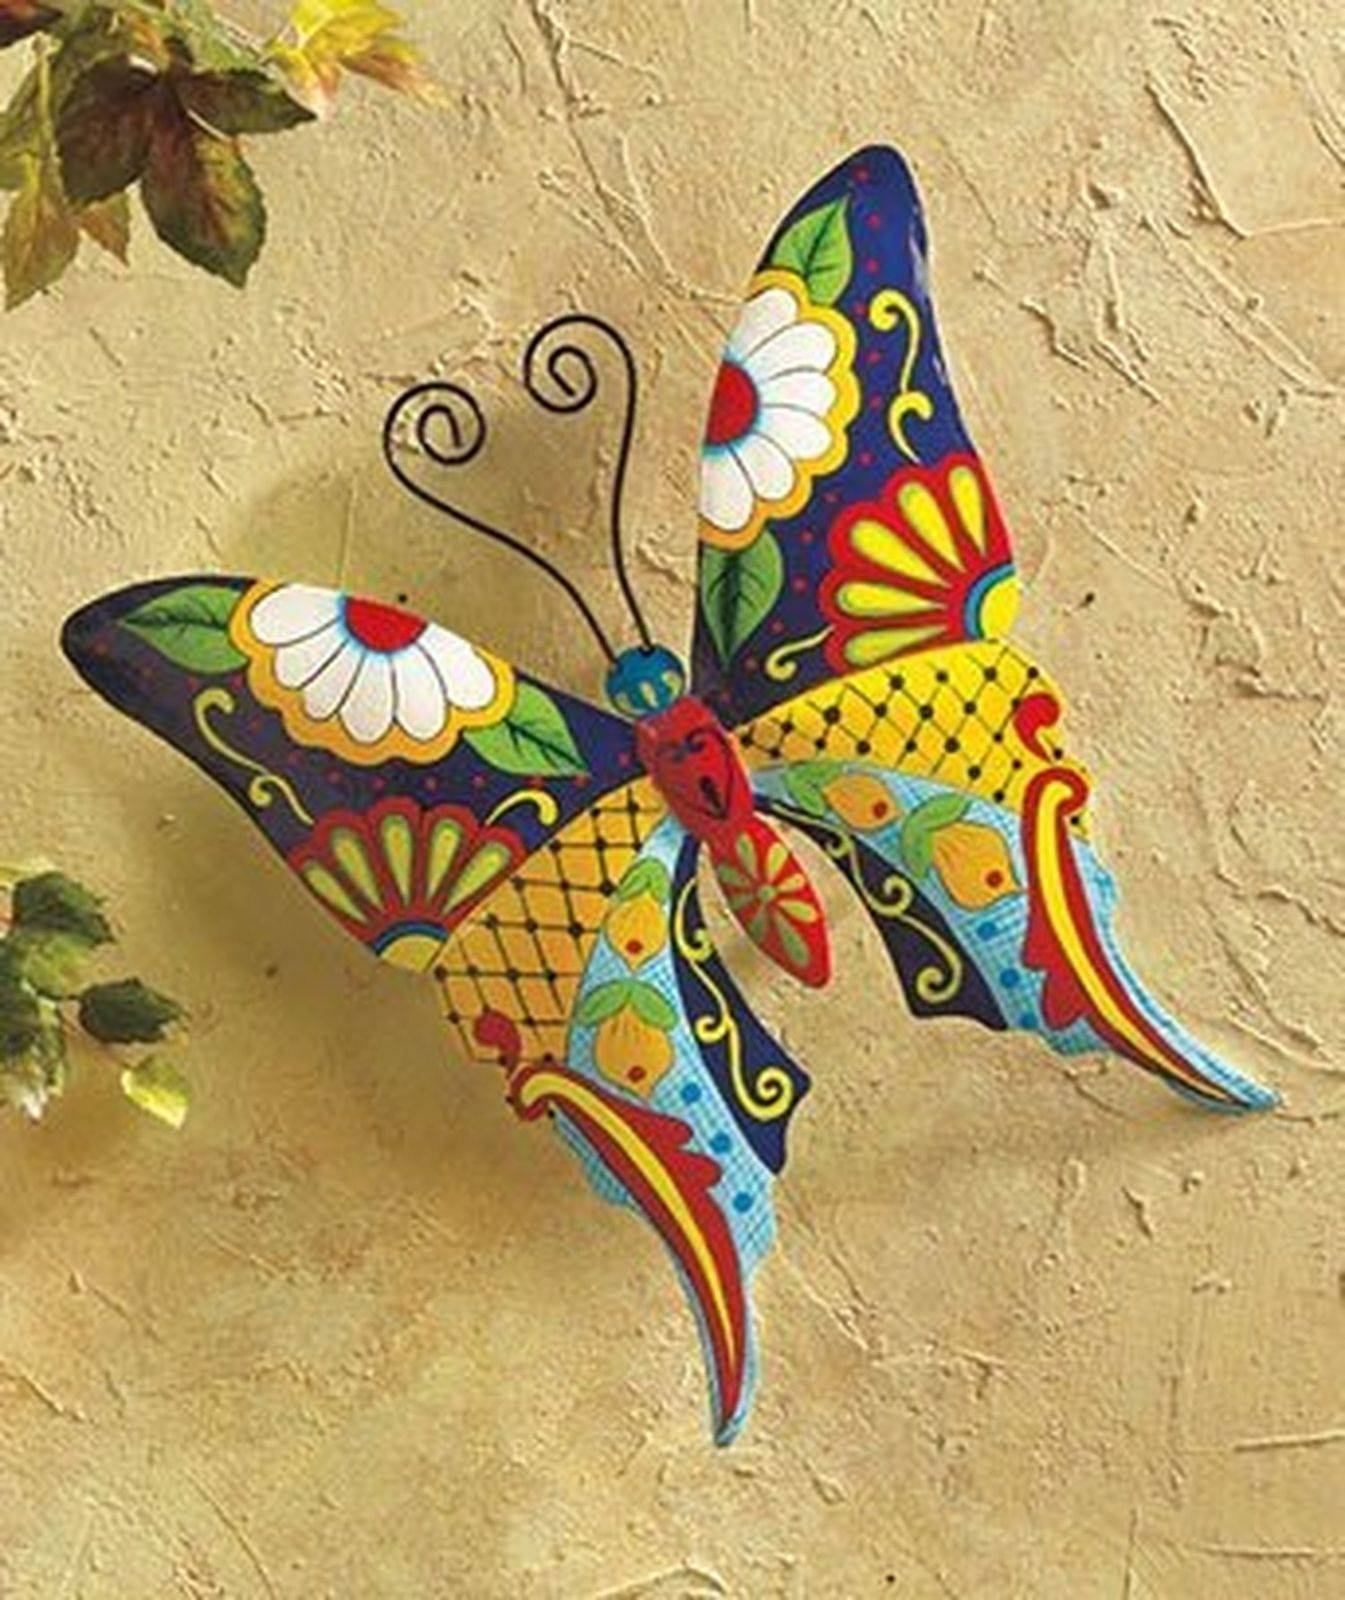 Butterfly Metal Wall Art Garden Mexican Talavera Style Colorful With Regard To Most Up To Date Mexican Metal Yard Wall Art (View 3 of 30)